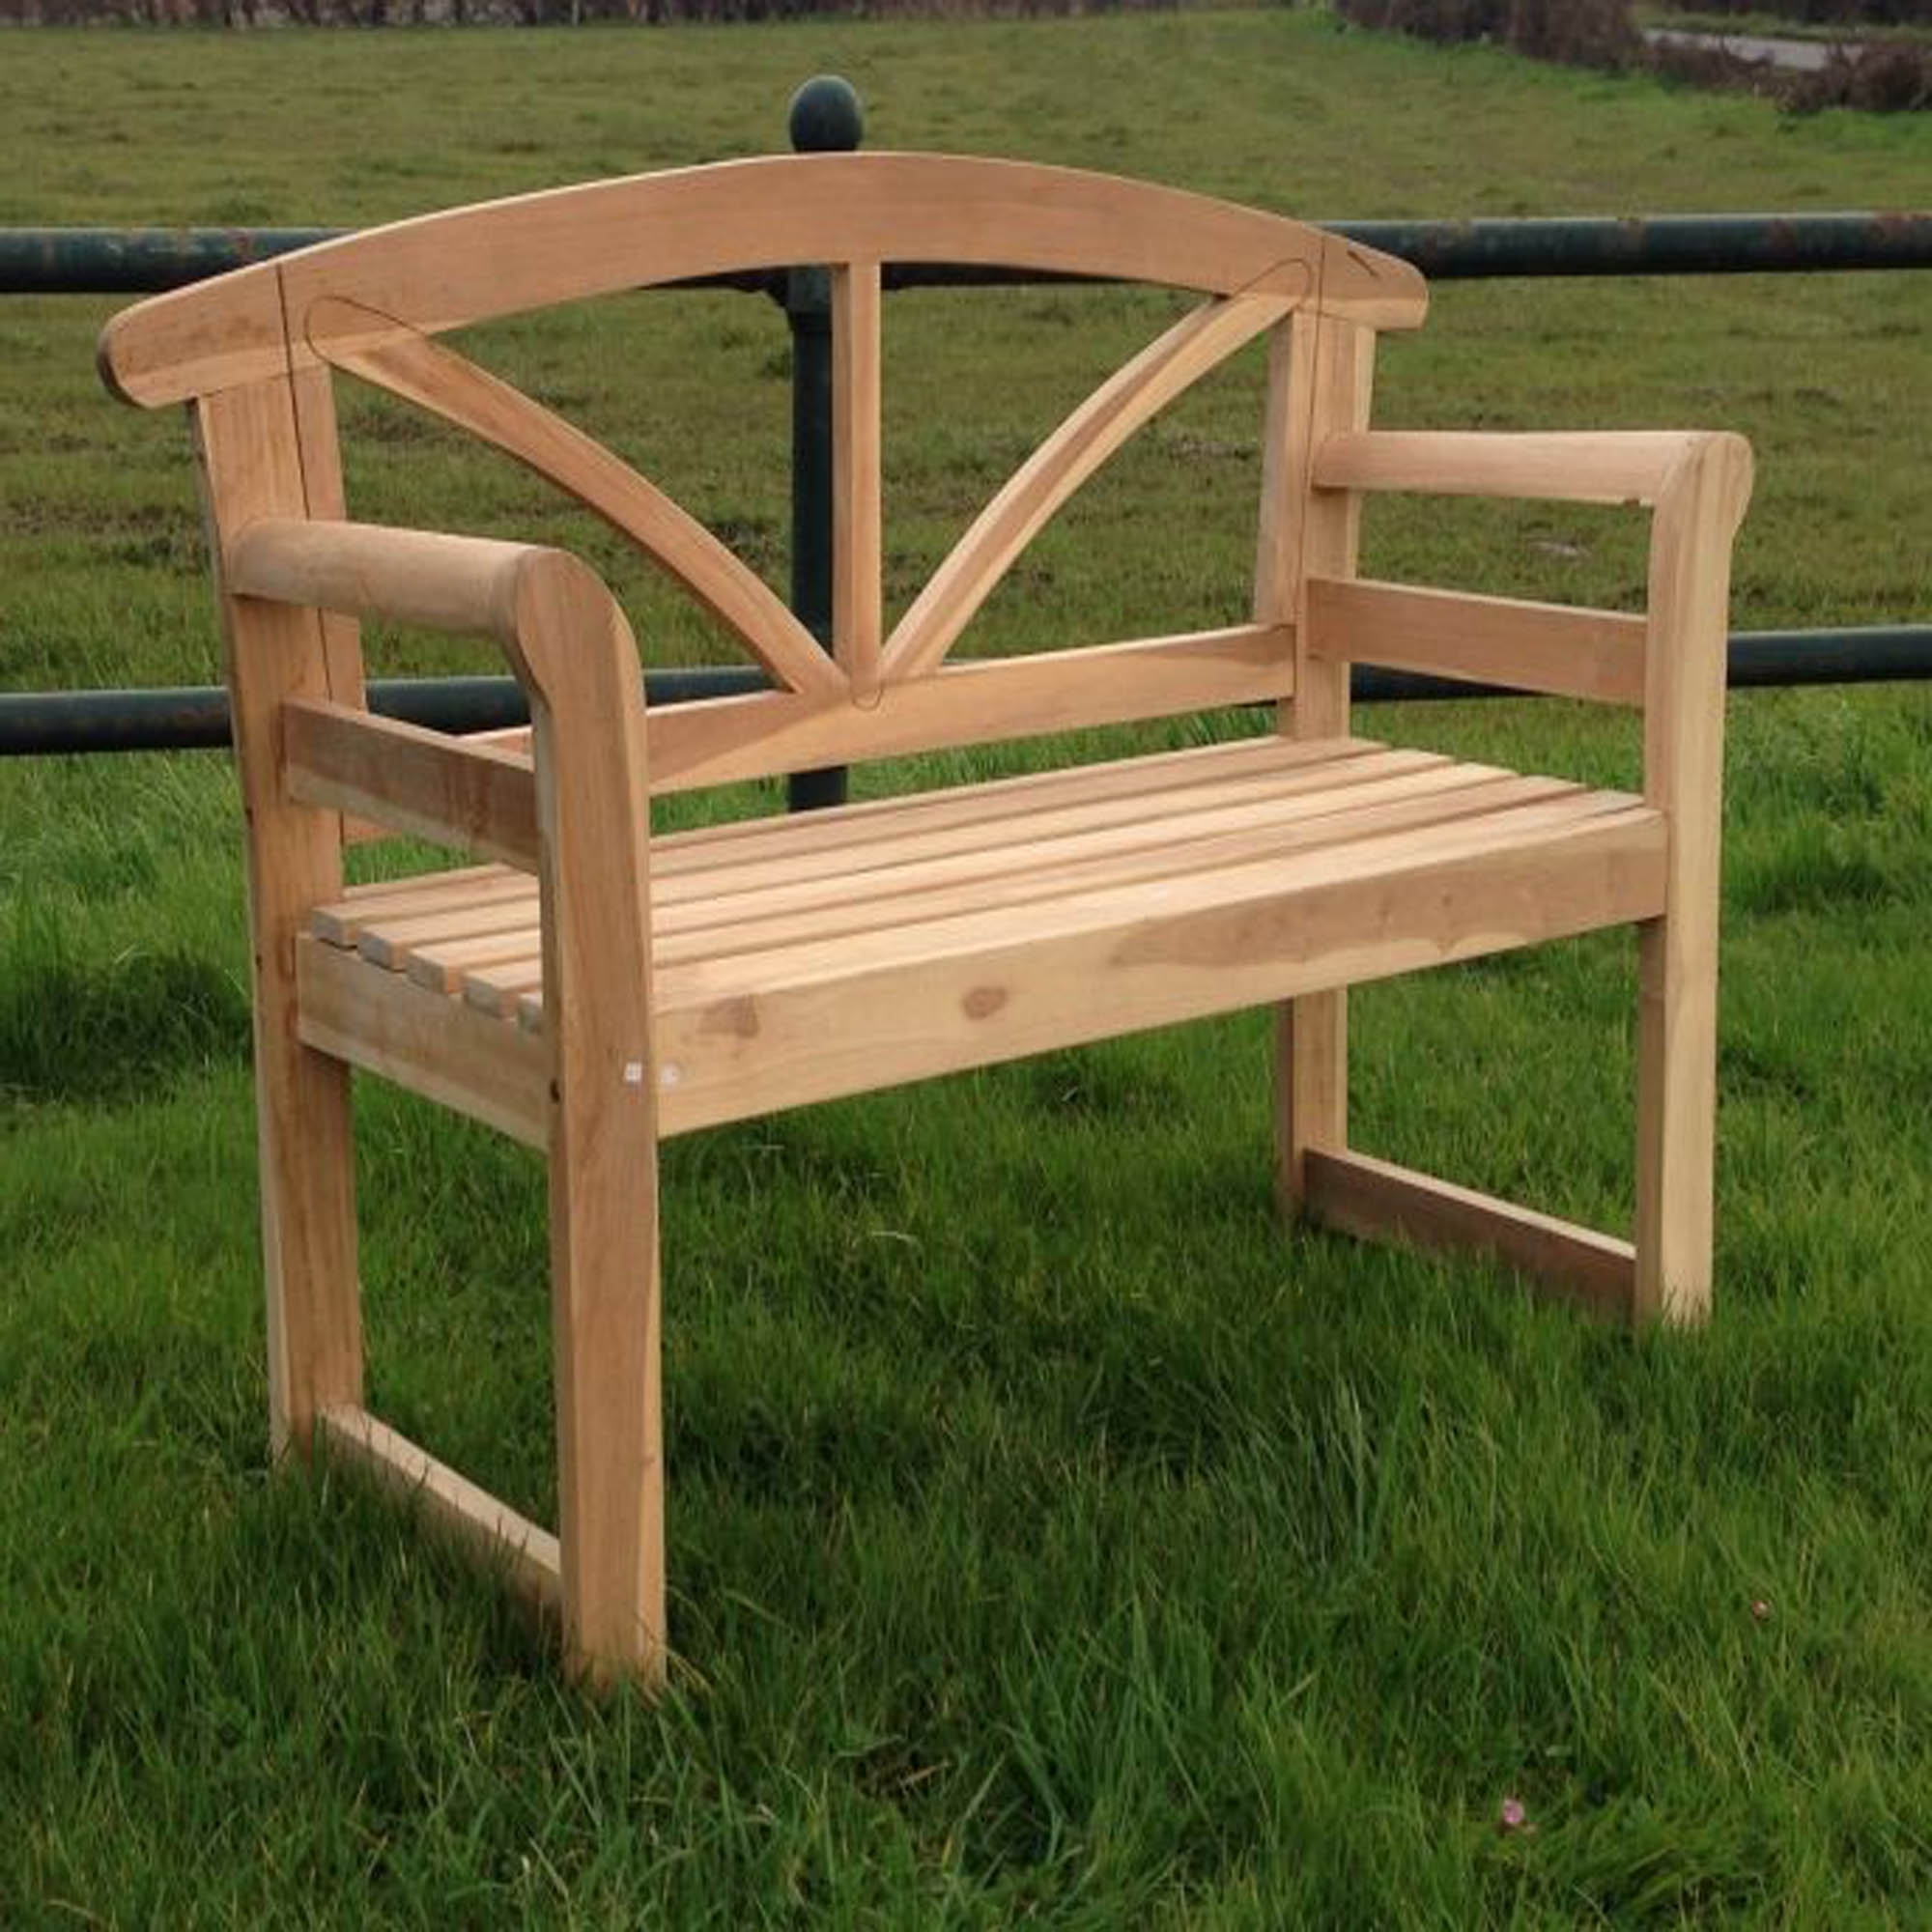 Most Popular Diy Garden Bench Ideas – Free Plans For Outdoor Benches Intended For Guyapi Garden Benches (View 25 of 30)